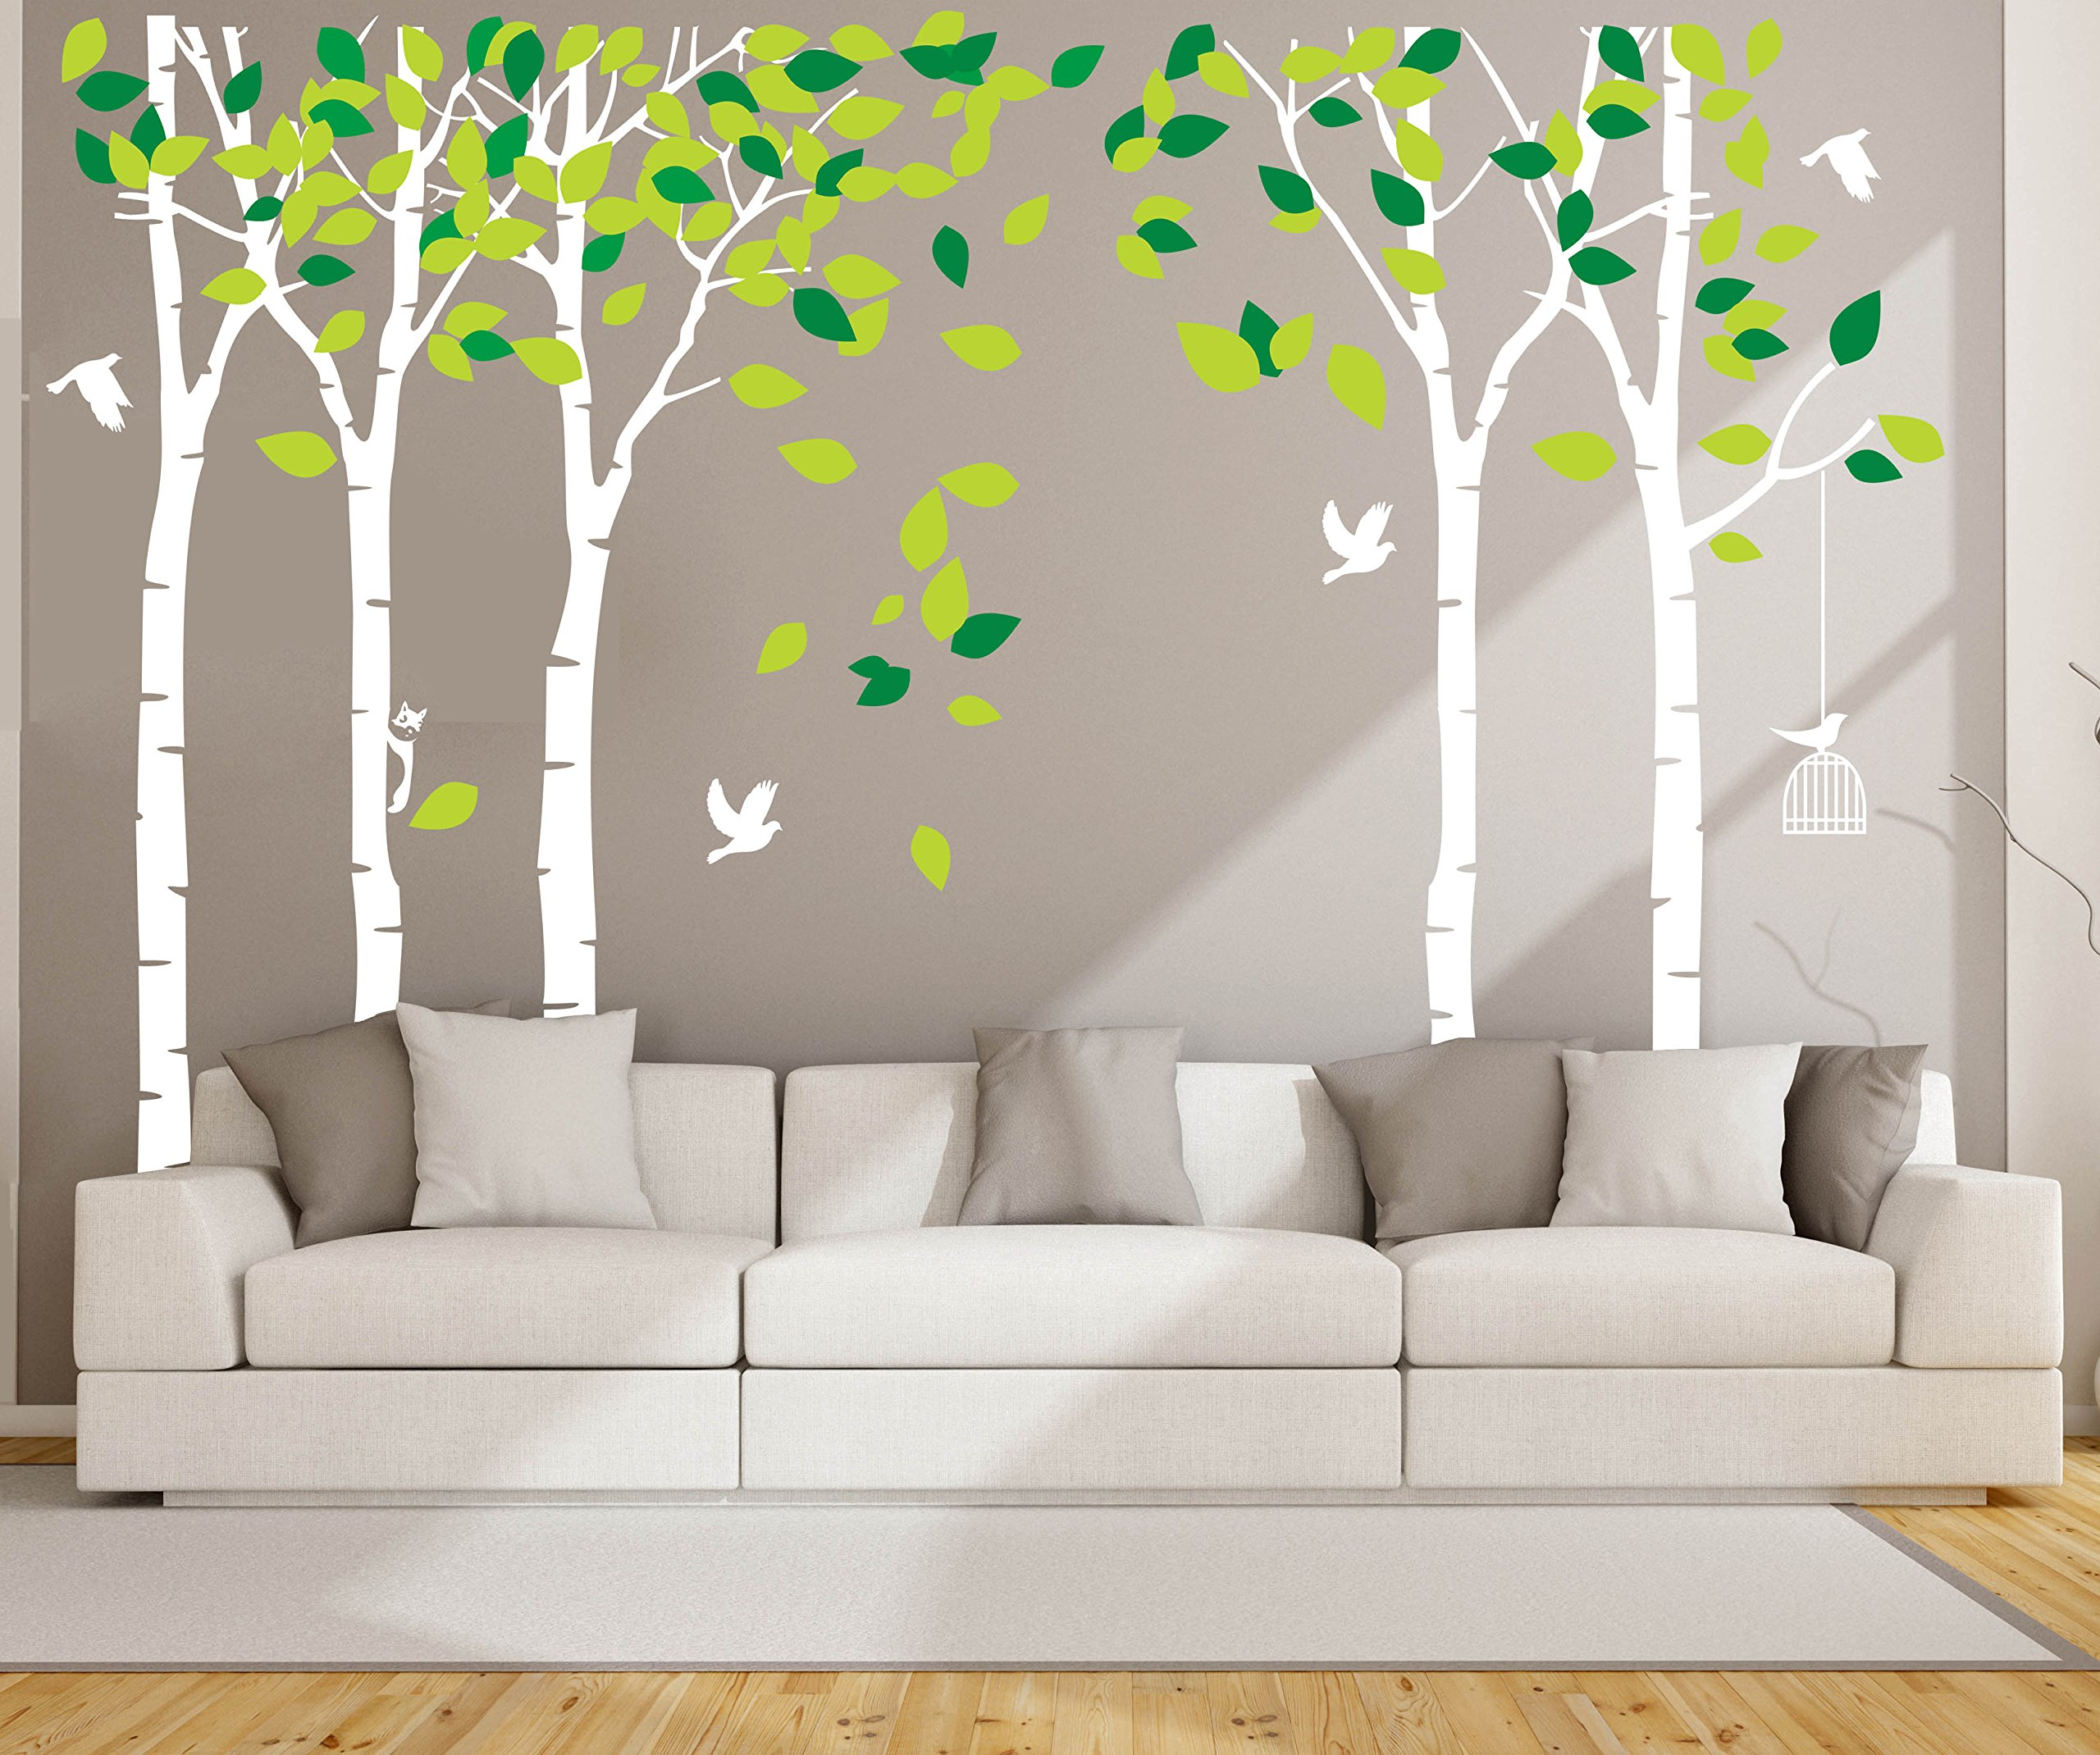 ANBER Giant Jungle Tree Wall Decal Removable Vinyl Sticker Mural Art Bedroom Nursery Baby Kids Rooms Wall Décor by ANBER